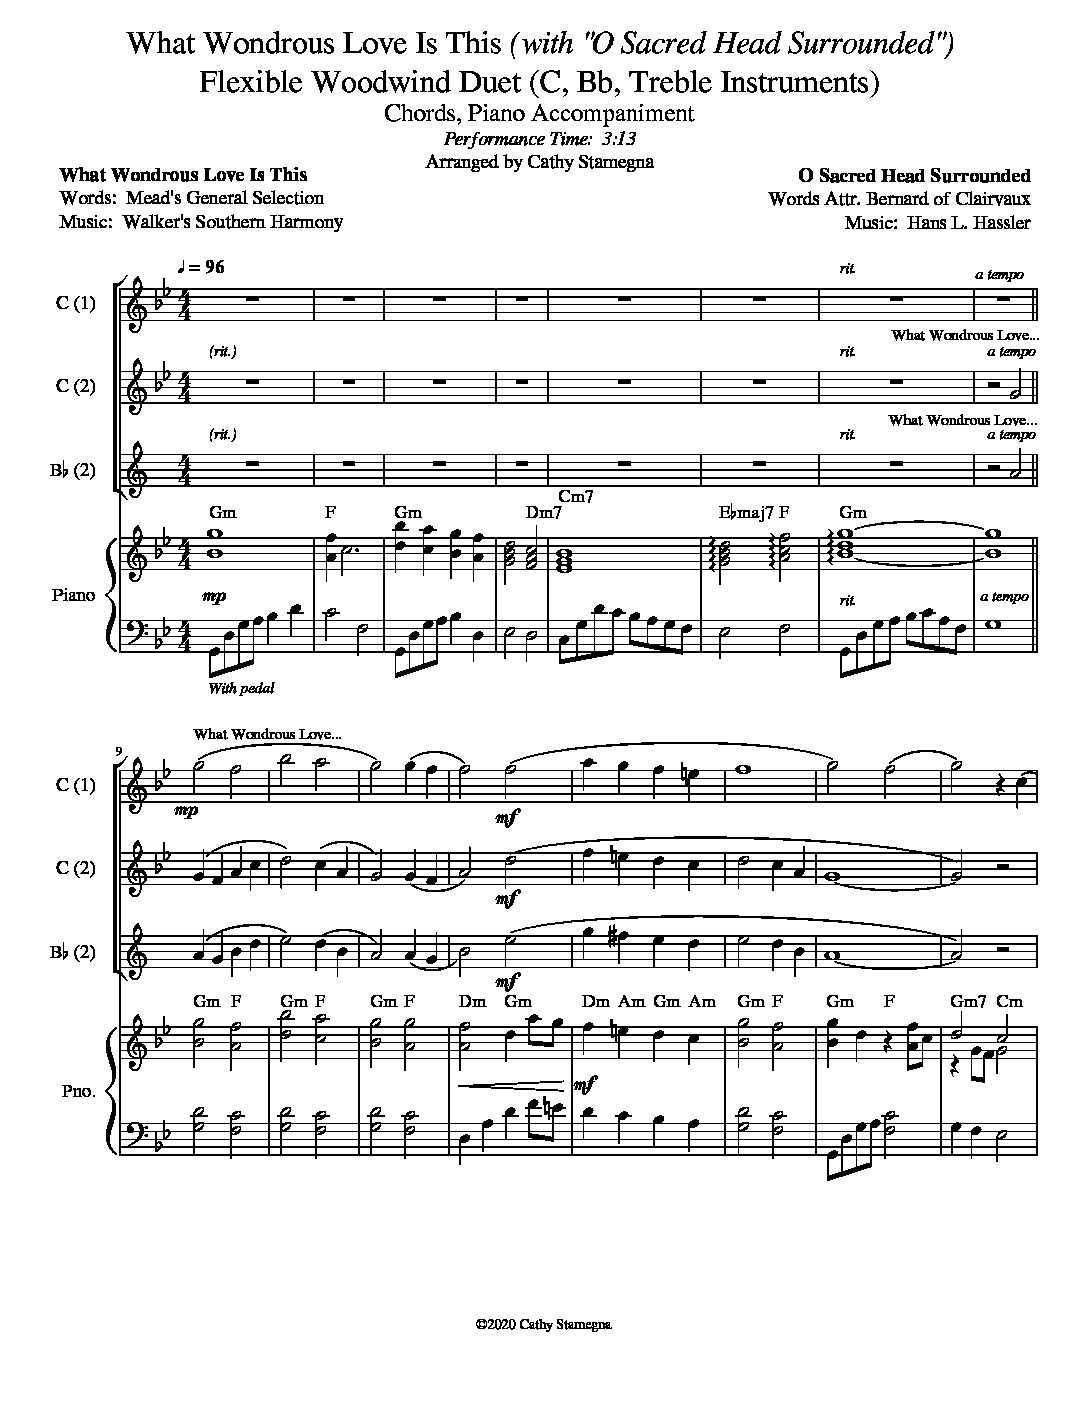 """What Wondrous Love Is This (with """"O Sacred Head Surrounded"""") (Flexible Woodwind Duet for Treble C, Bb Instruments, Chords, Piano)"""